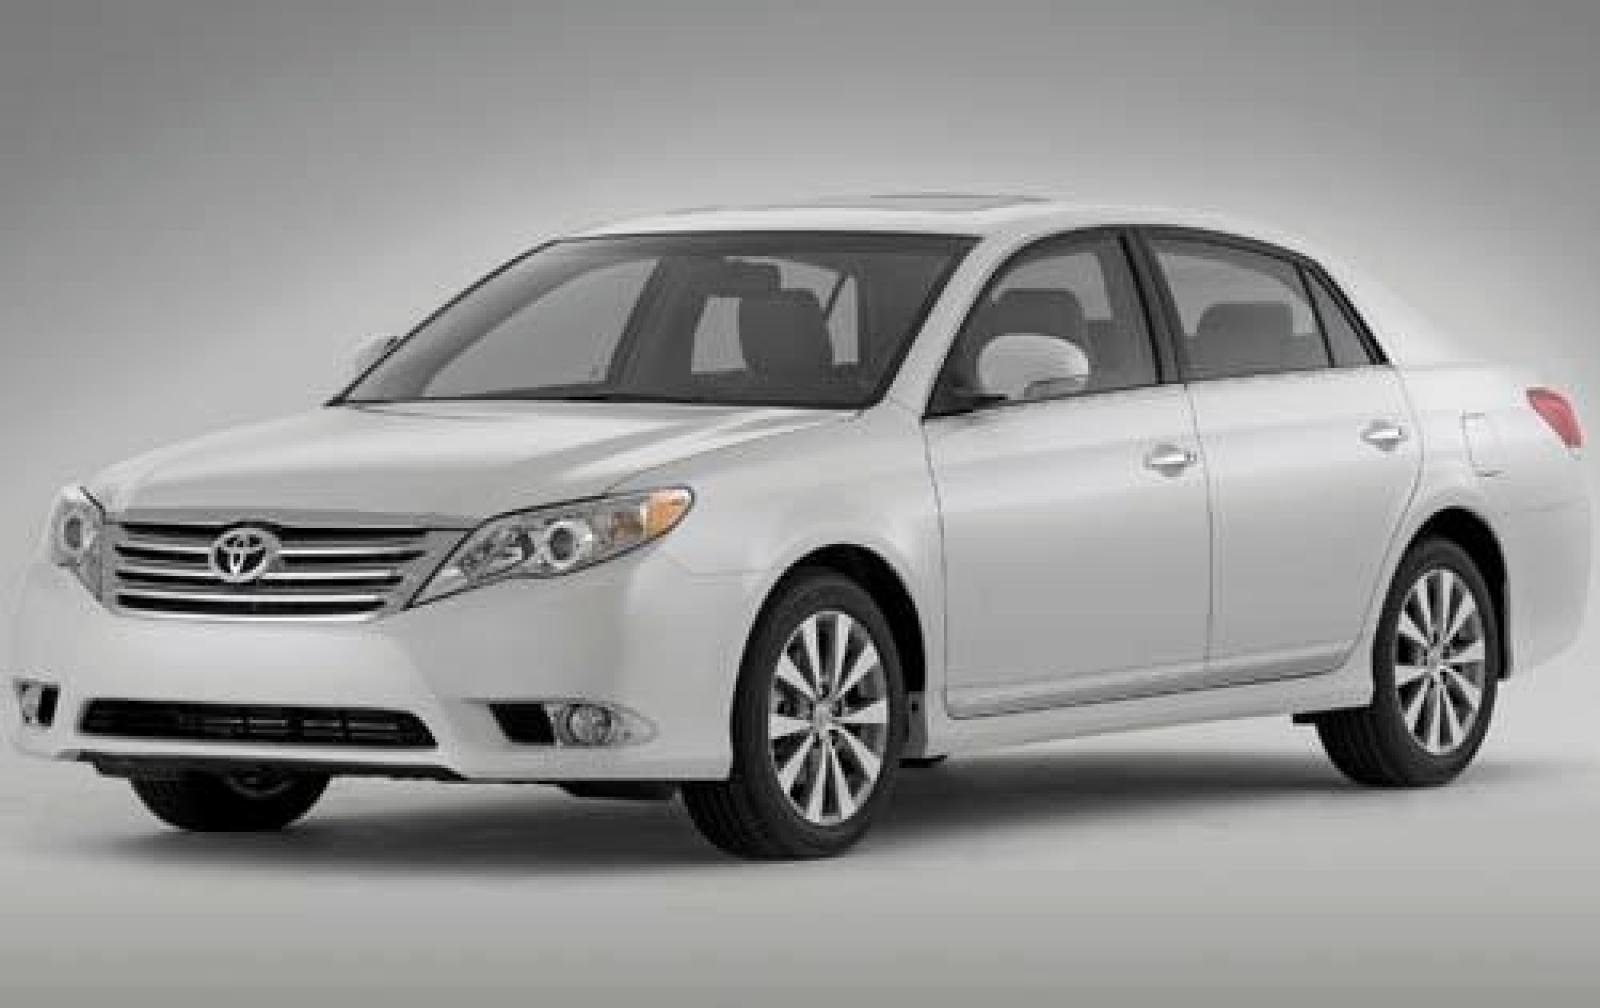 2012 toyota avalon information and photos zombiedrive rh zombdrive com 2015 toyota avalon owners manual 2014 toyota avalon owners manual pdf